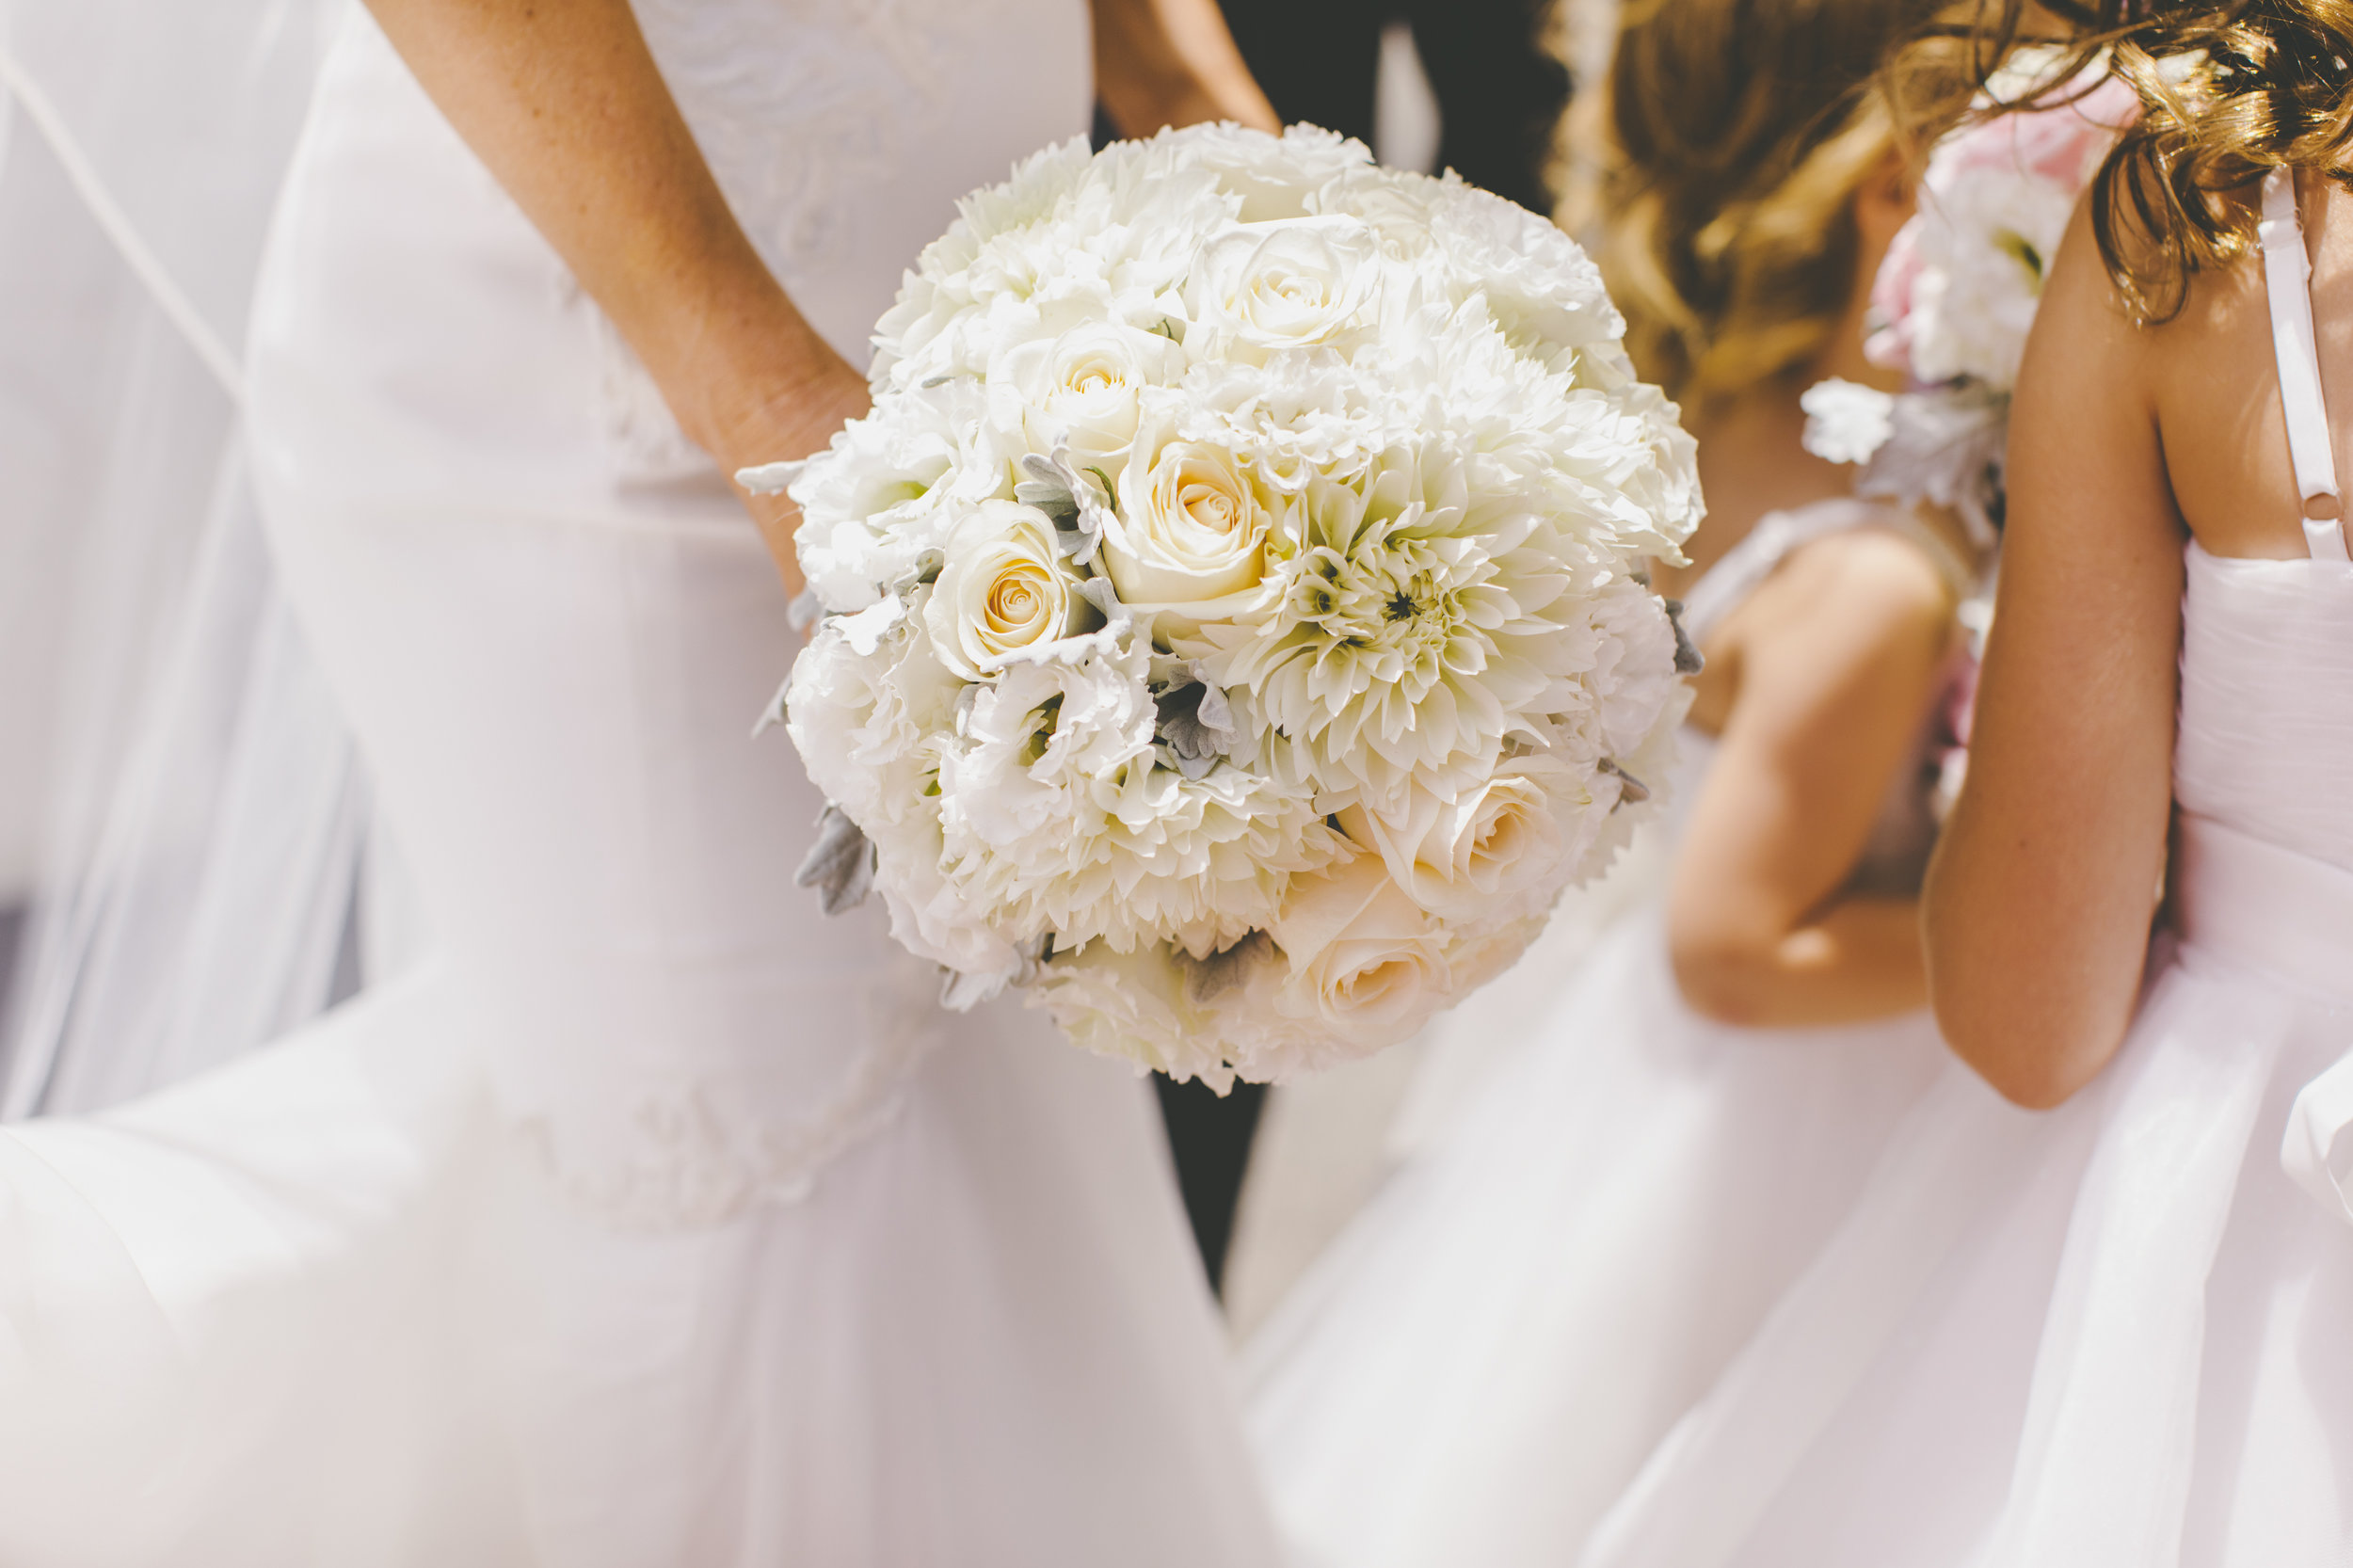 Wedding Bouquet for Bride Natalie Lowe at her Balmoral Wedding